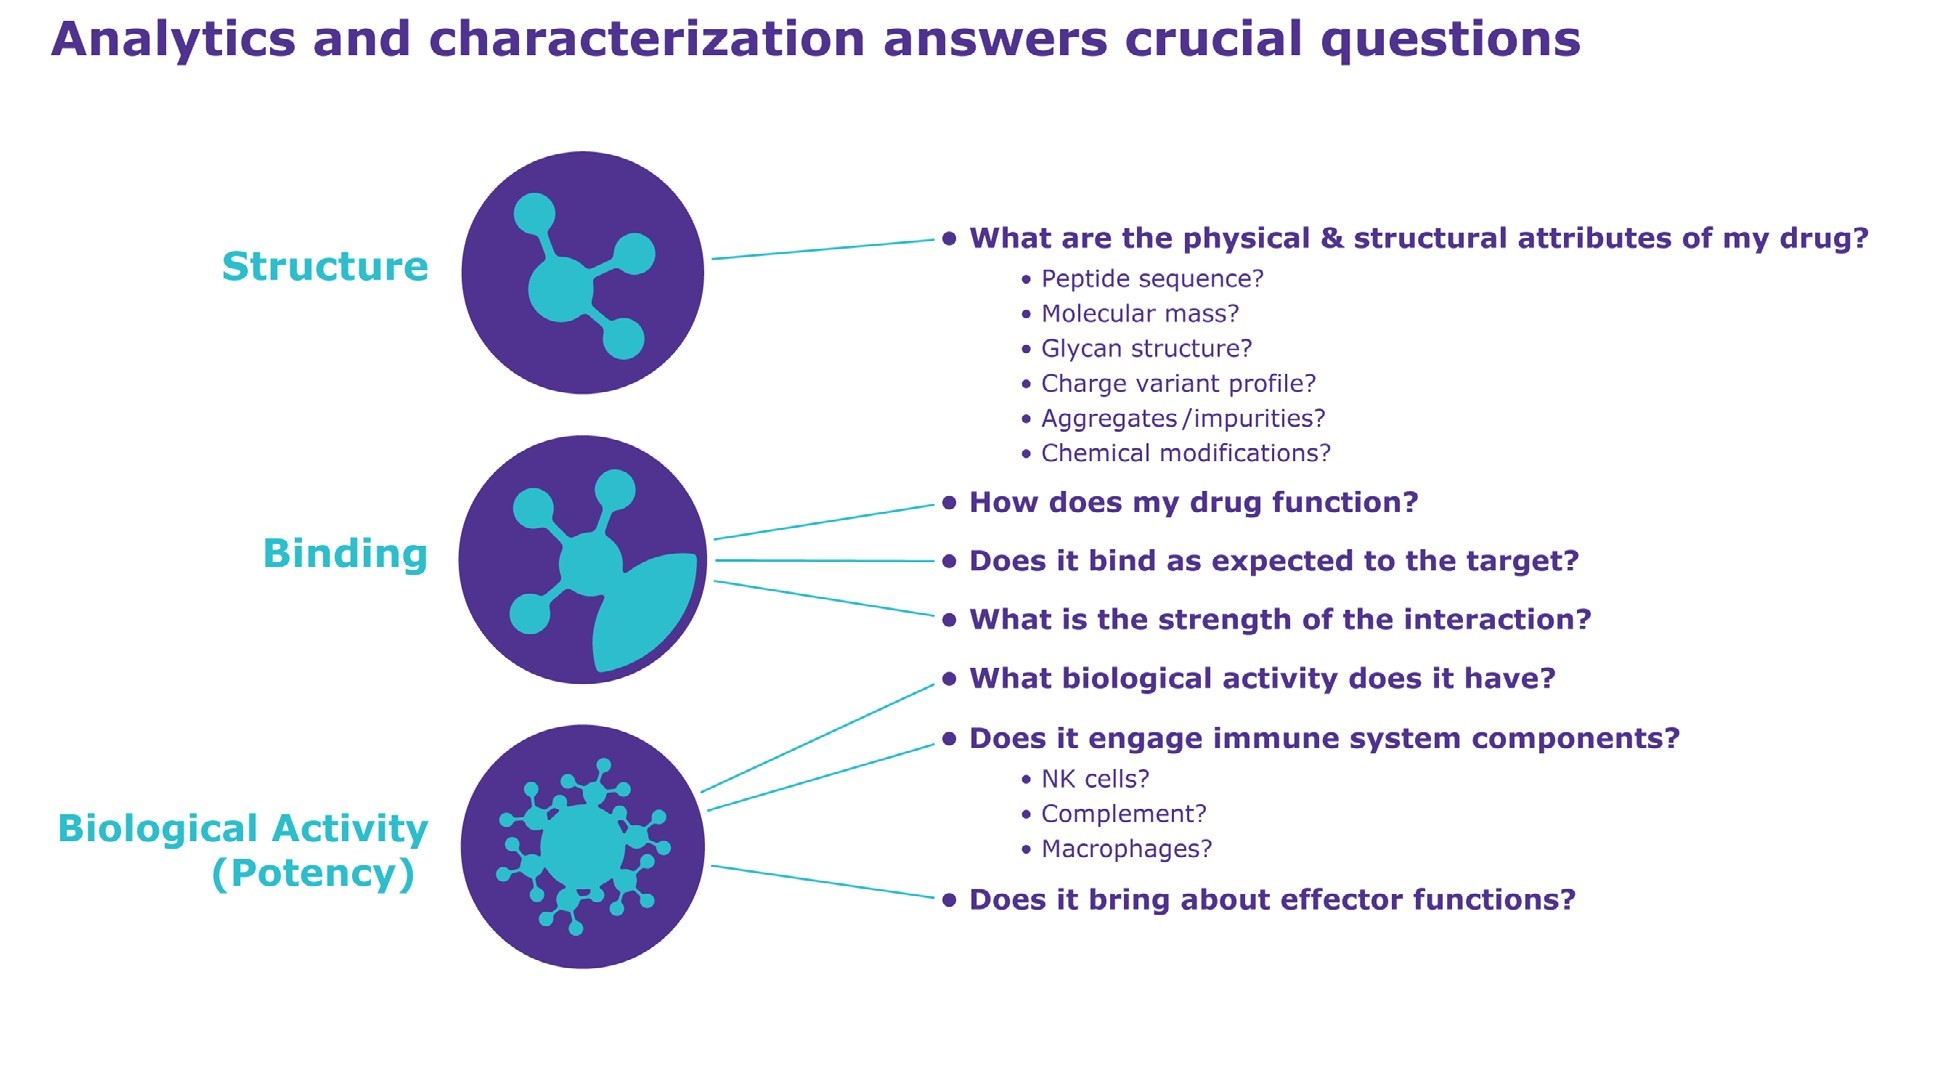 Analytics and characterization answers crucial questions